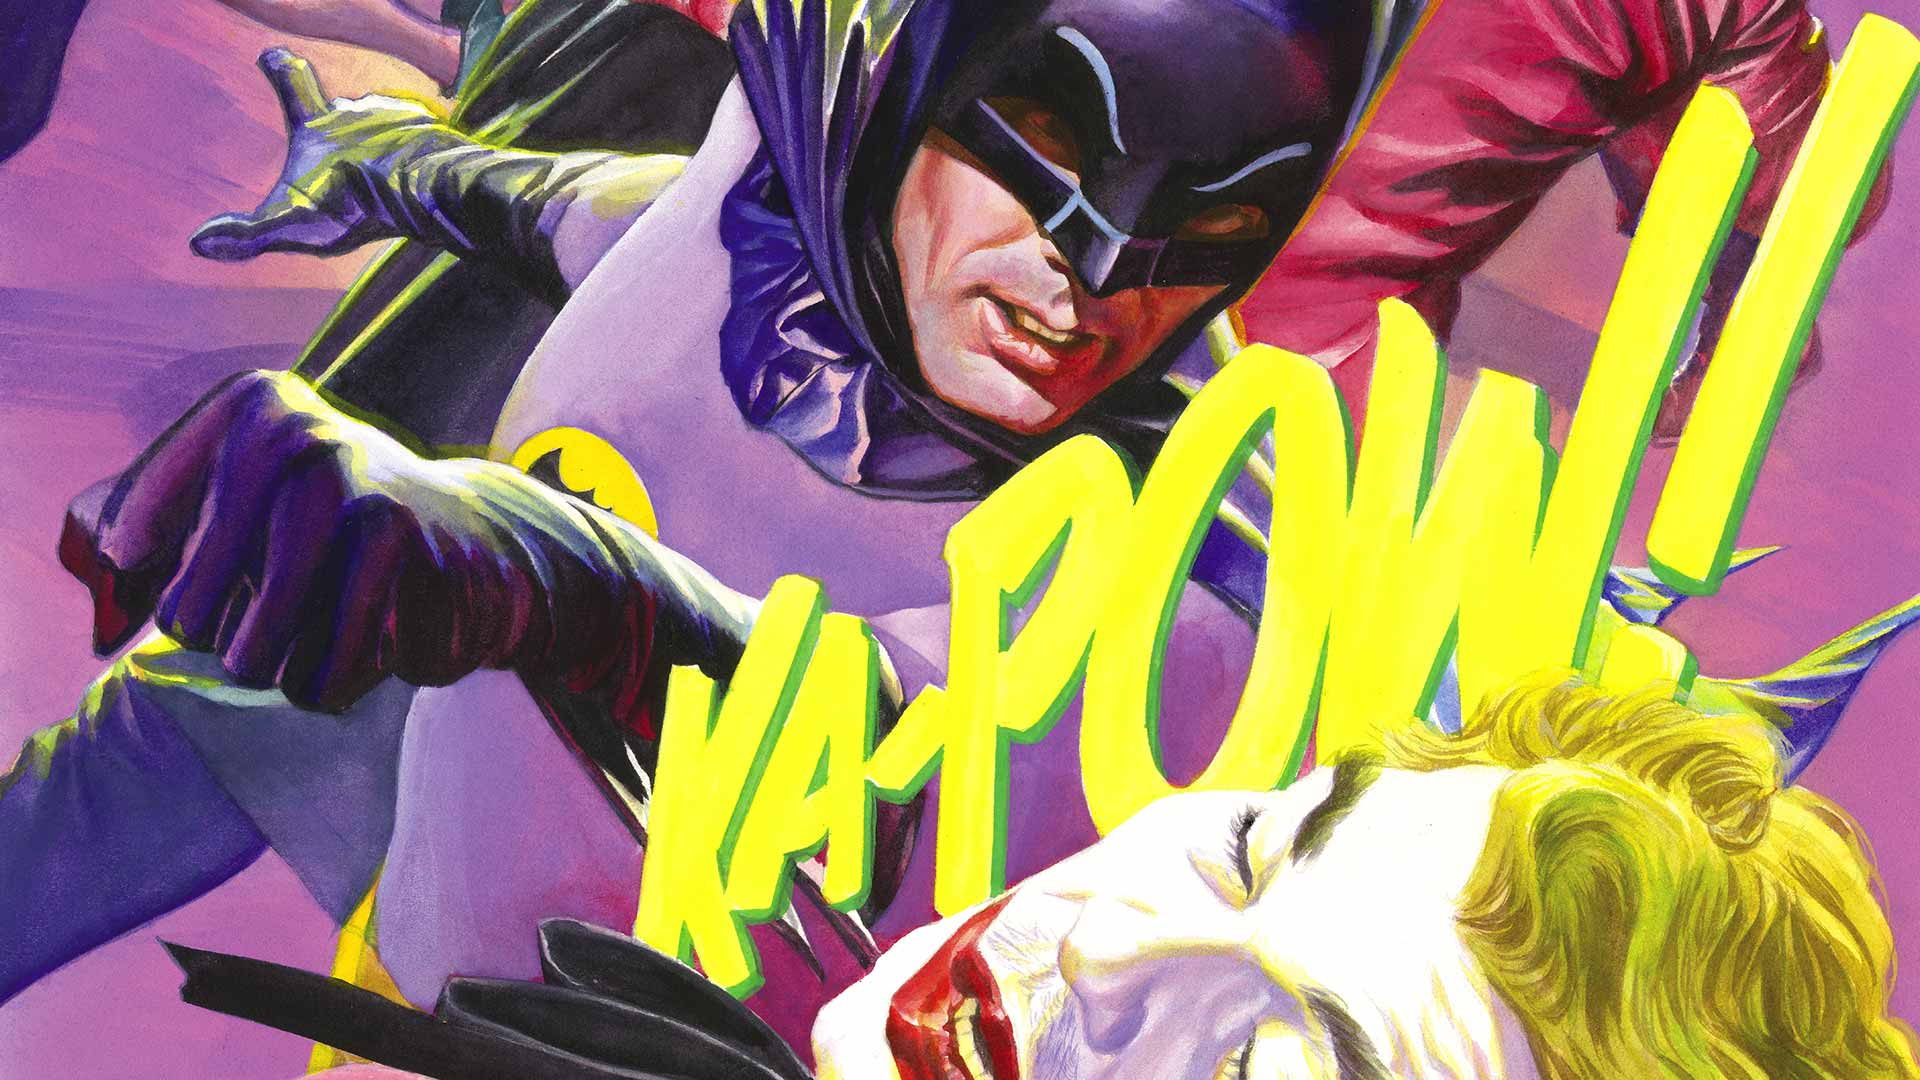 Batman '66 Backgrounds, Compatible - PC, Mobile, Gadgets| 1920x1080 px